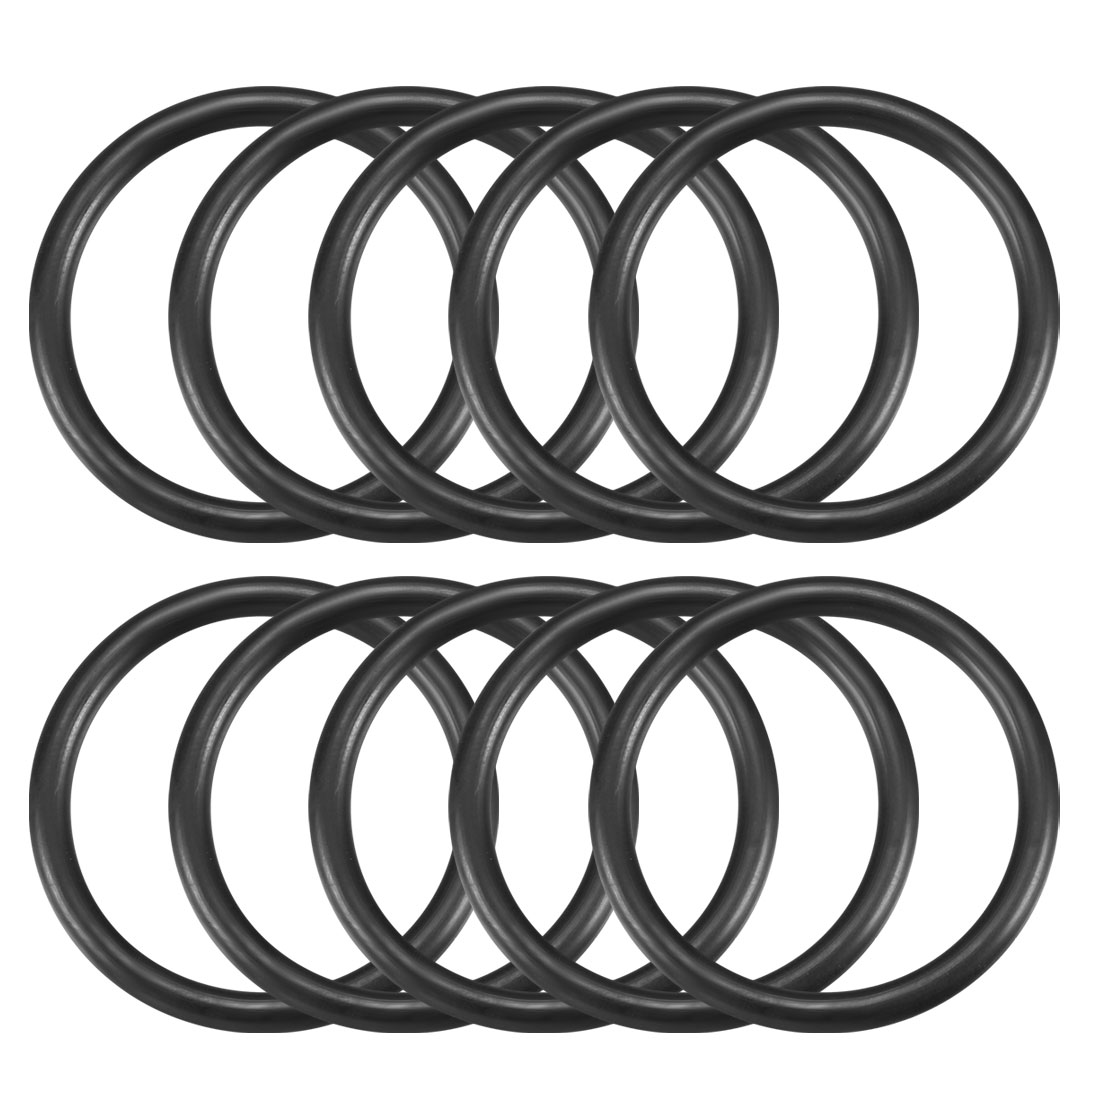 10 Pcs 37mm x 30mm x 3.5mm Industrial Rubber O Ring Oil Seal Gaskets